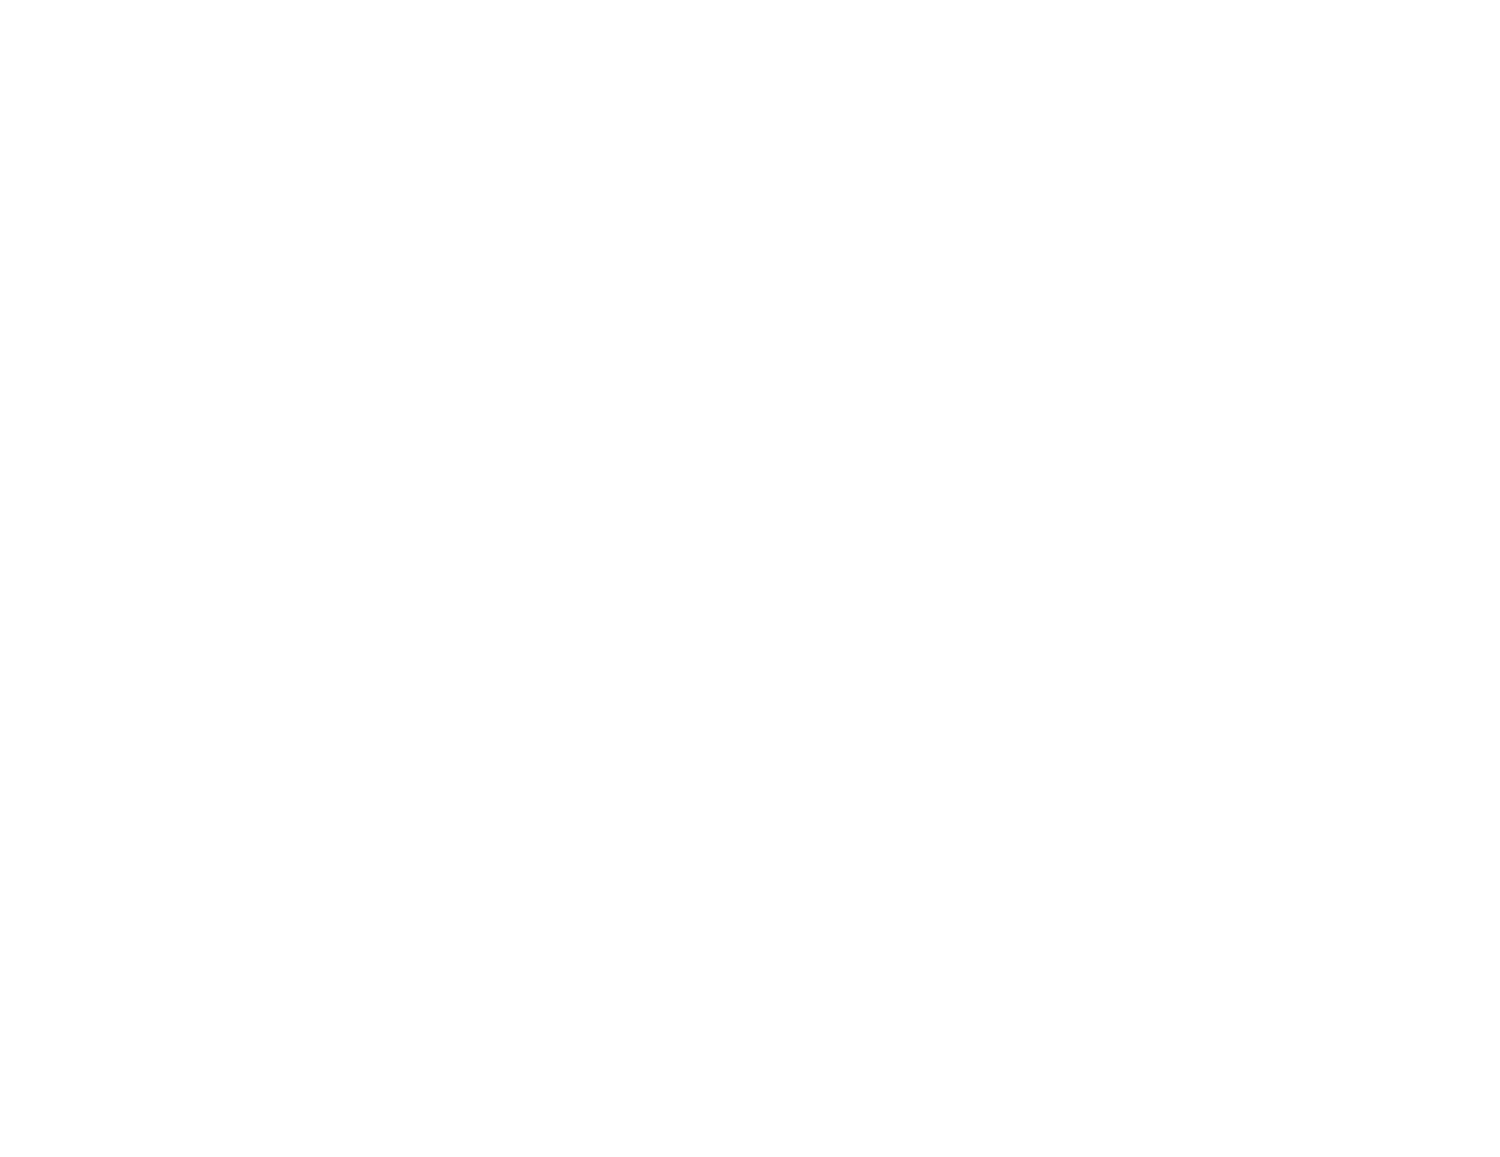 Cigar City Brewing's El Catador Club